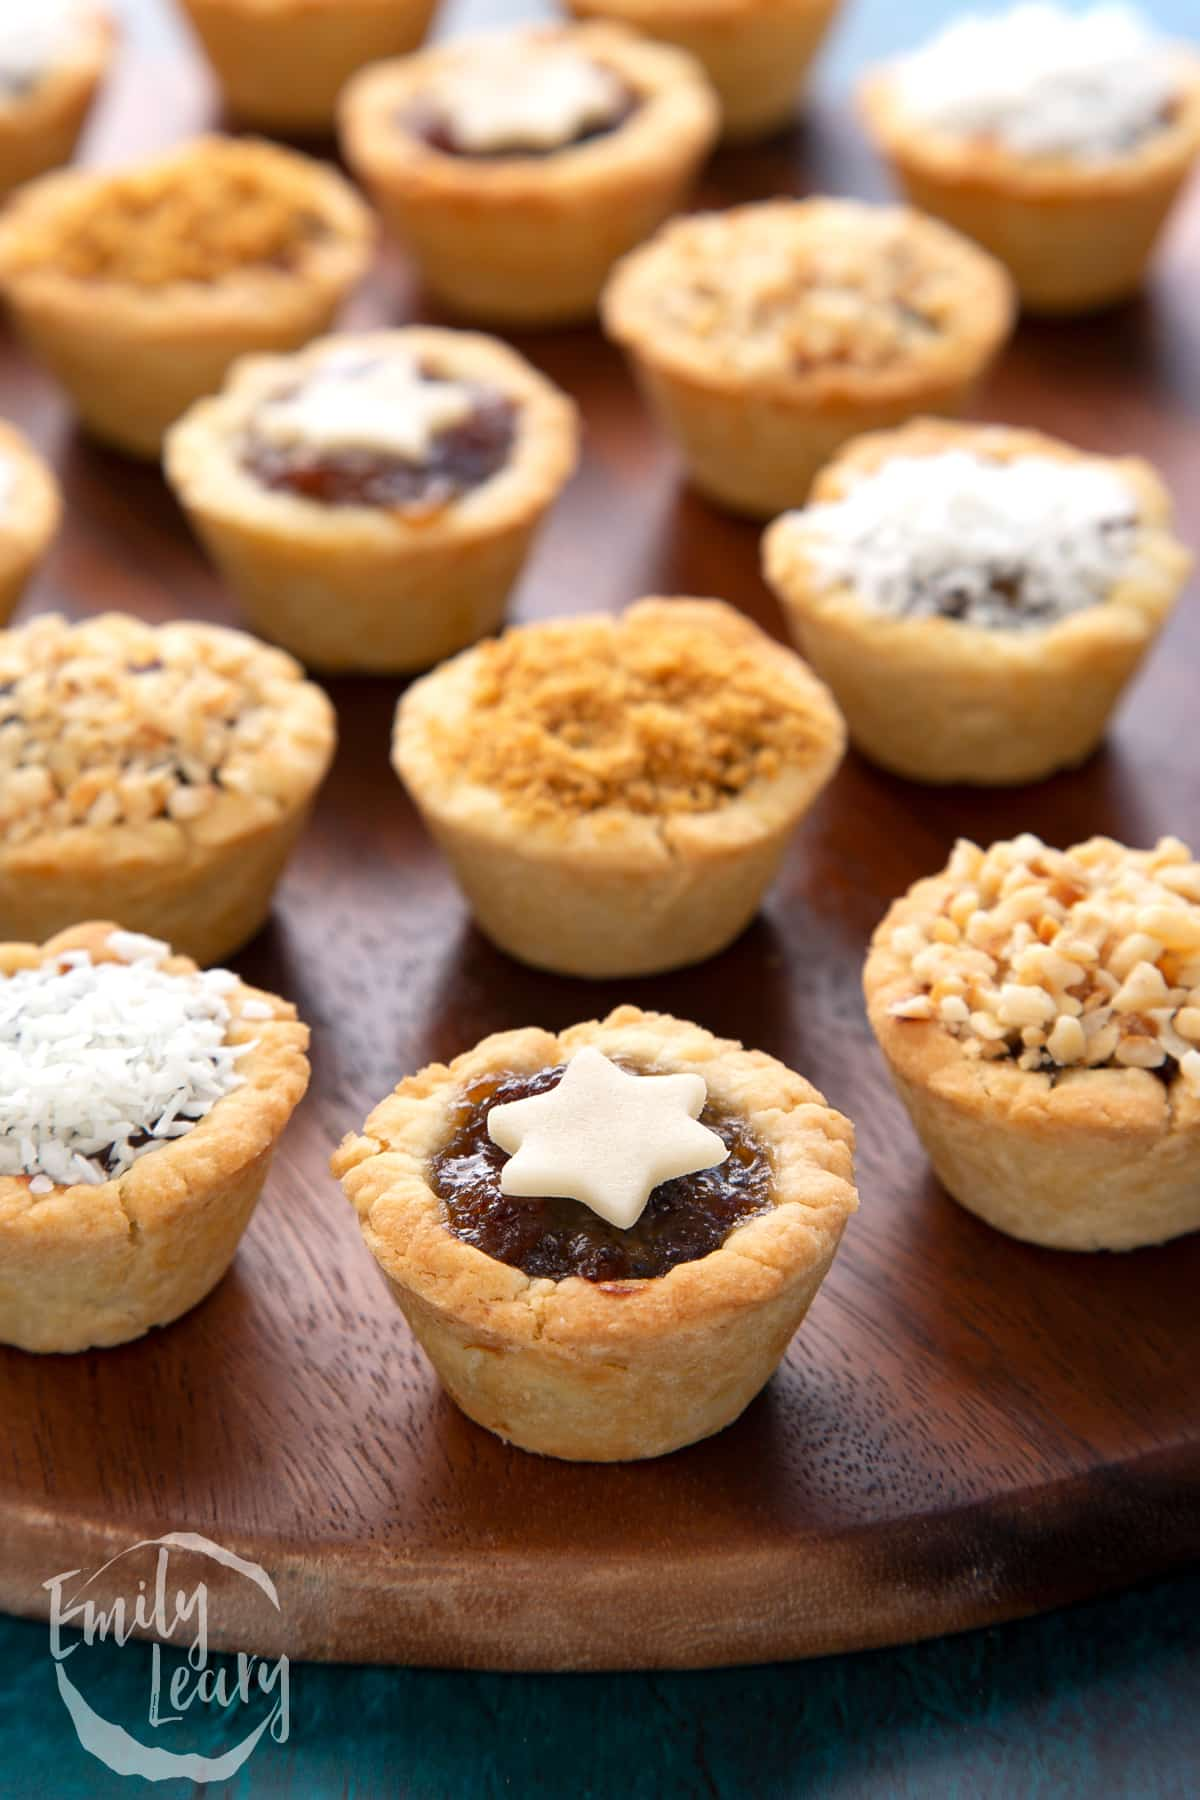 A marzipan star topped mini mince pie. More mini mince pies are also on the dark wooden board.